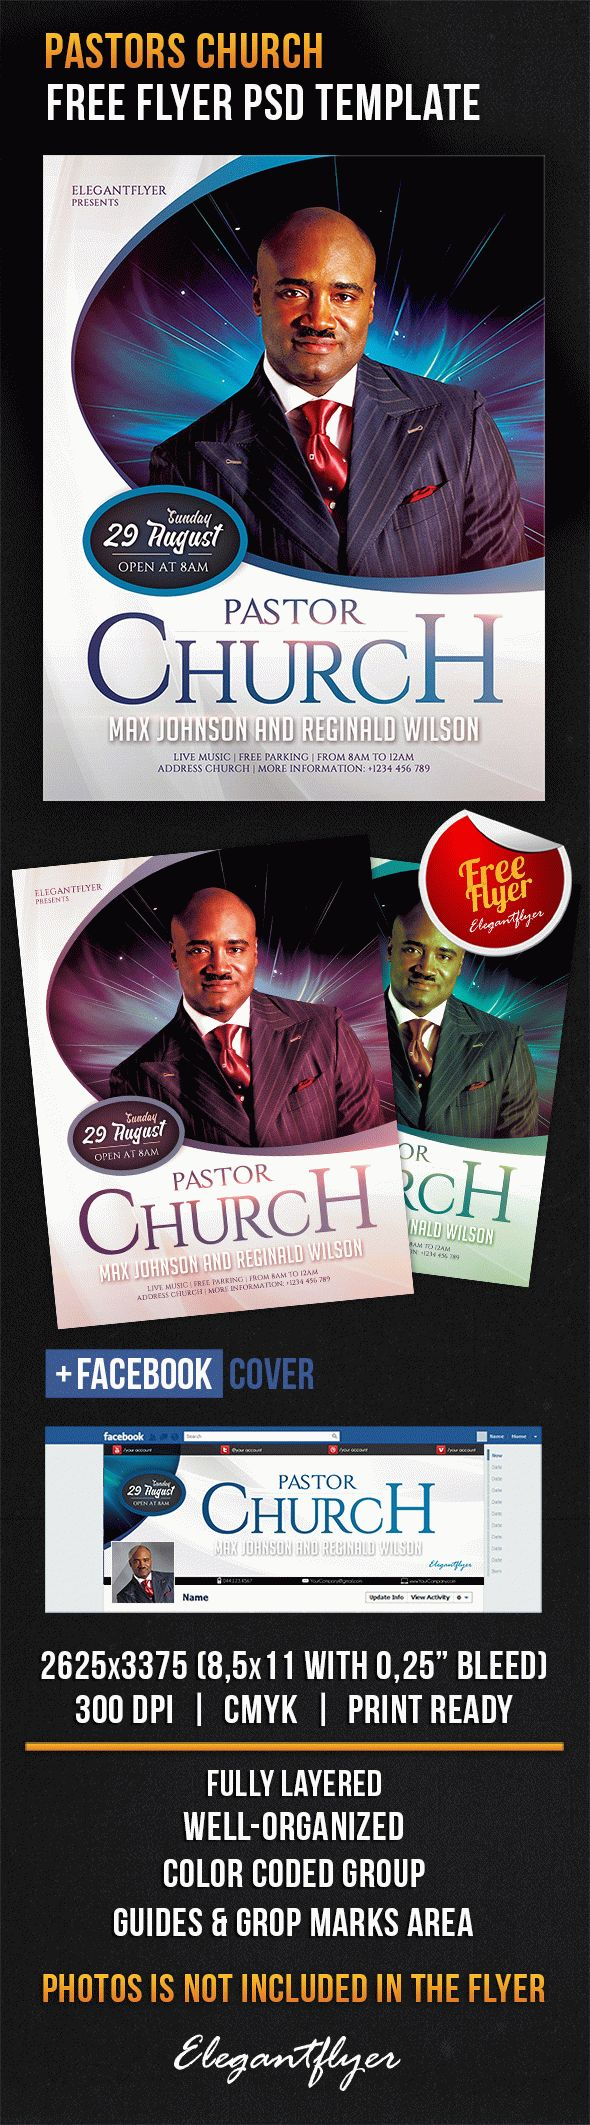 Pastors Church – Free Flyer PSD Template + Facebook Cover